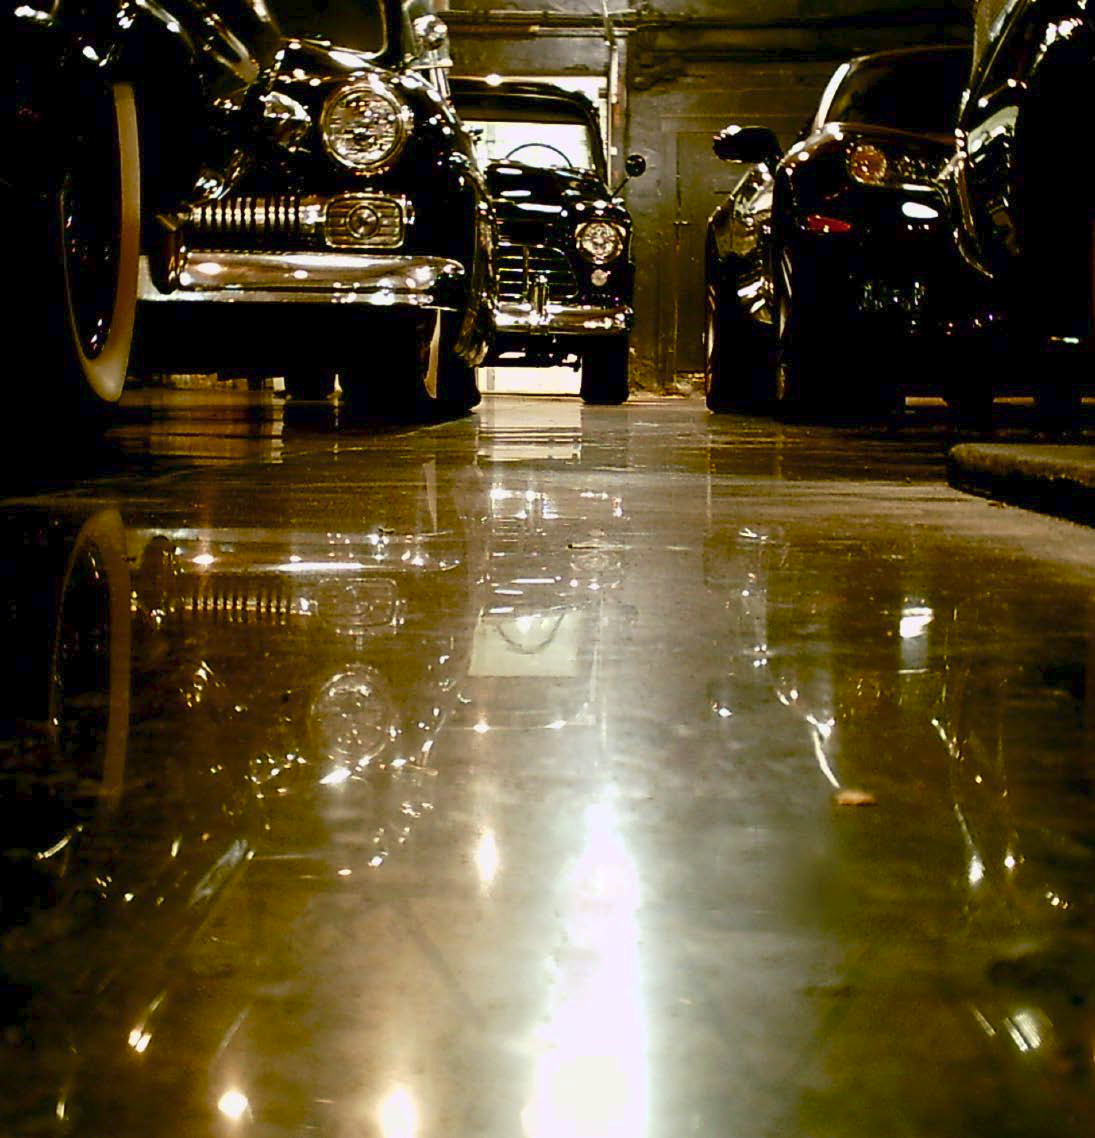 The floor of this garage has a highly reflective floor achieved with a concrete polishing machine.